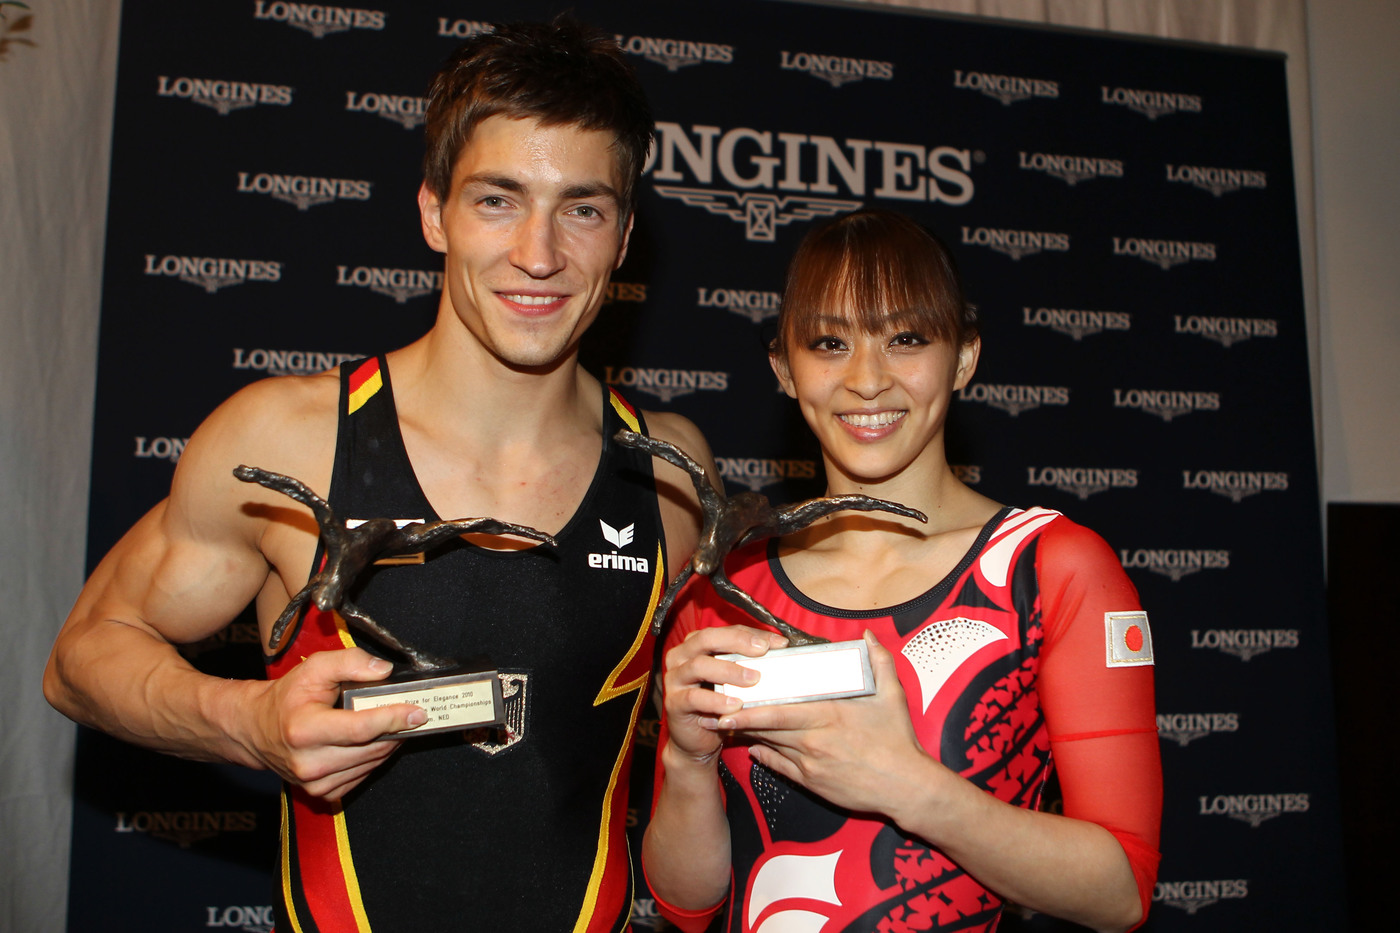 Longines Gymnastics Event: Rie Tanaka and Philipp Boy win the Longines Prize for Elegance 2010 in Rotterdam 5